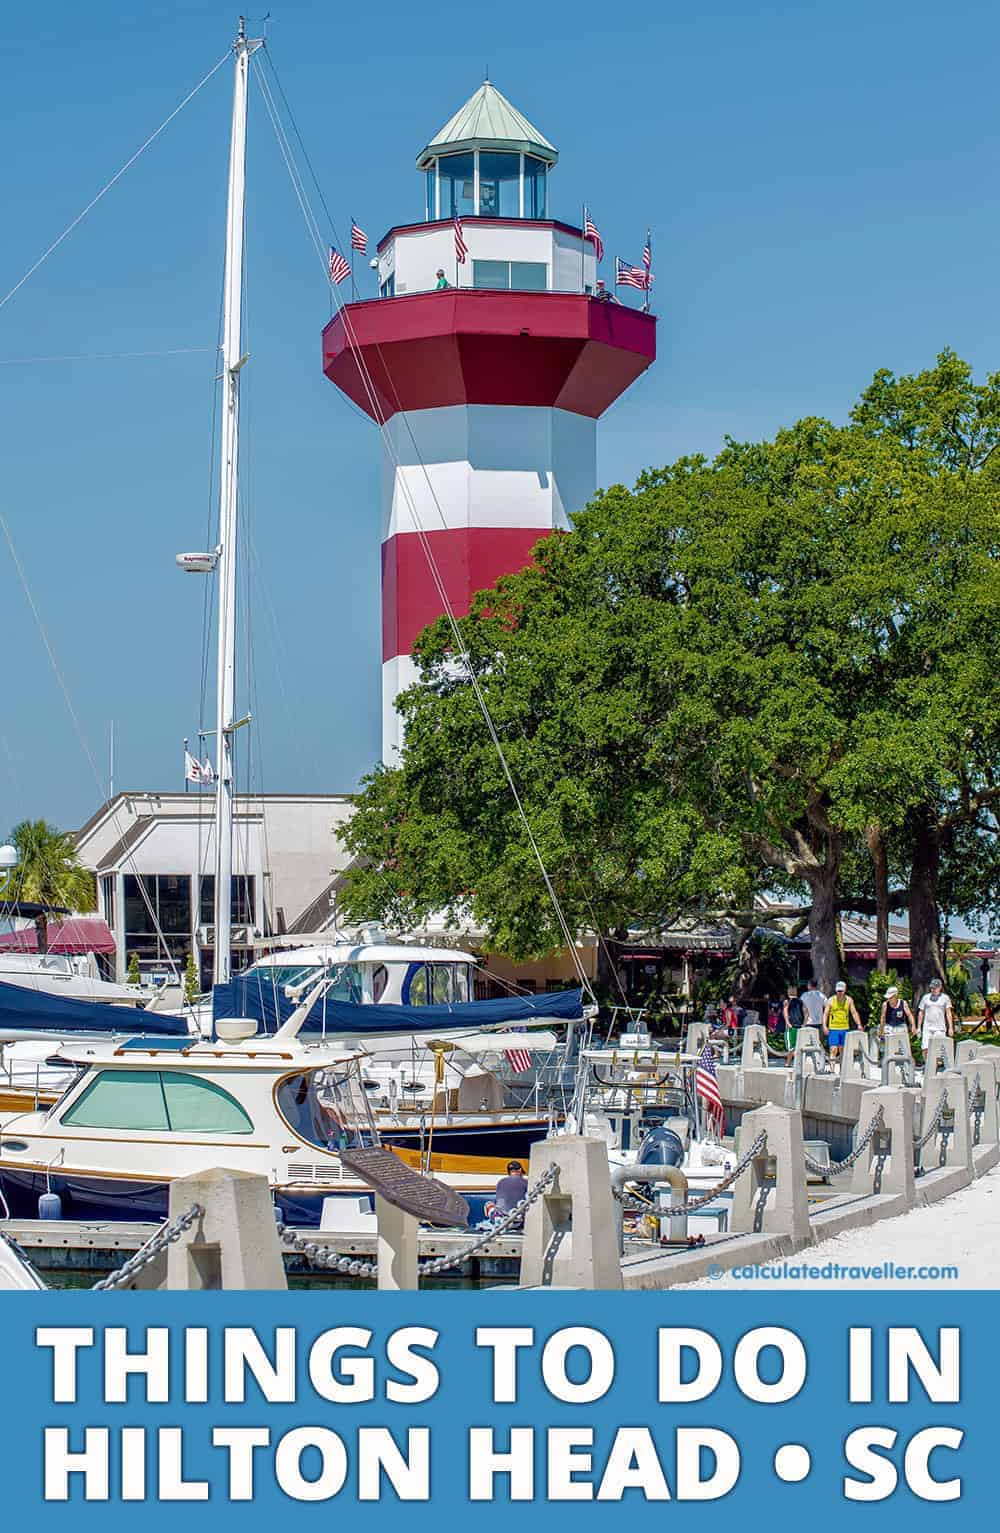 Top 5 Things to do in Hilton Head Island, South Carolina by Calculated Traveller | #HiltonHeadIsland #SouthCarolina #travel #USA